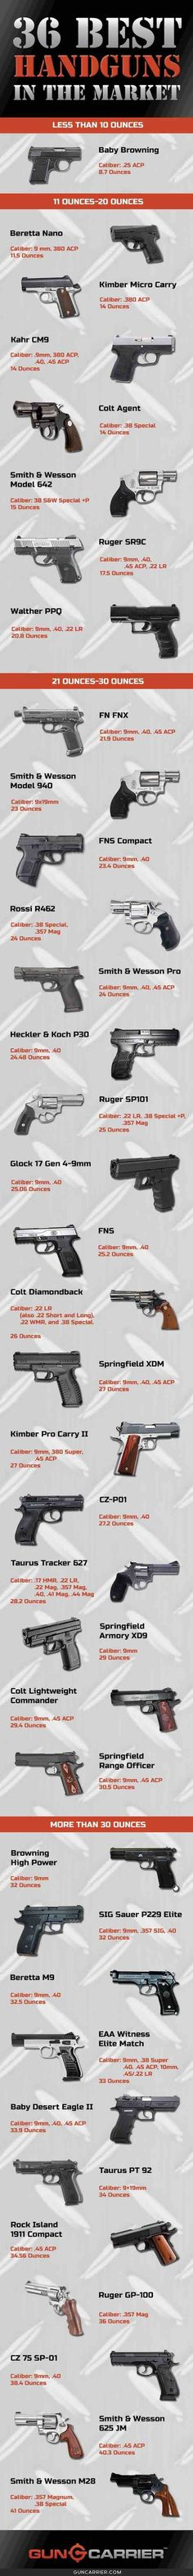 There's quite a lot to choose from for the best handguns in the market. Even conceal carry guns these days are equally reliable and sure to kick ass. Survival Weapons, Weapons Guns, Guns And Ammo, Home Defense, Self Defense, Rifles, Best Handguns, Target Practice, Hunting Guns